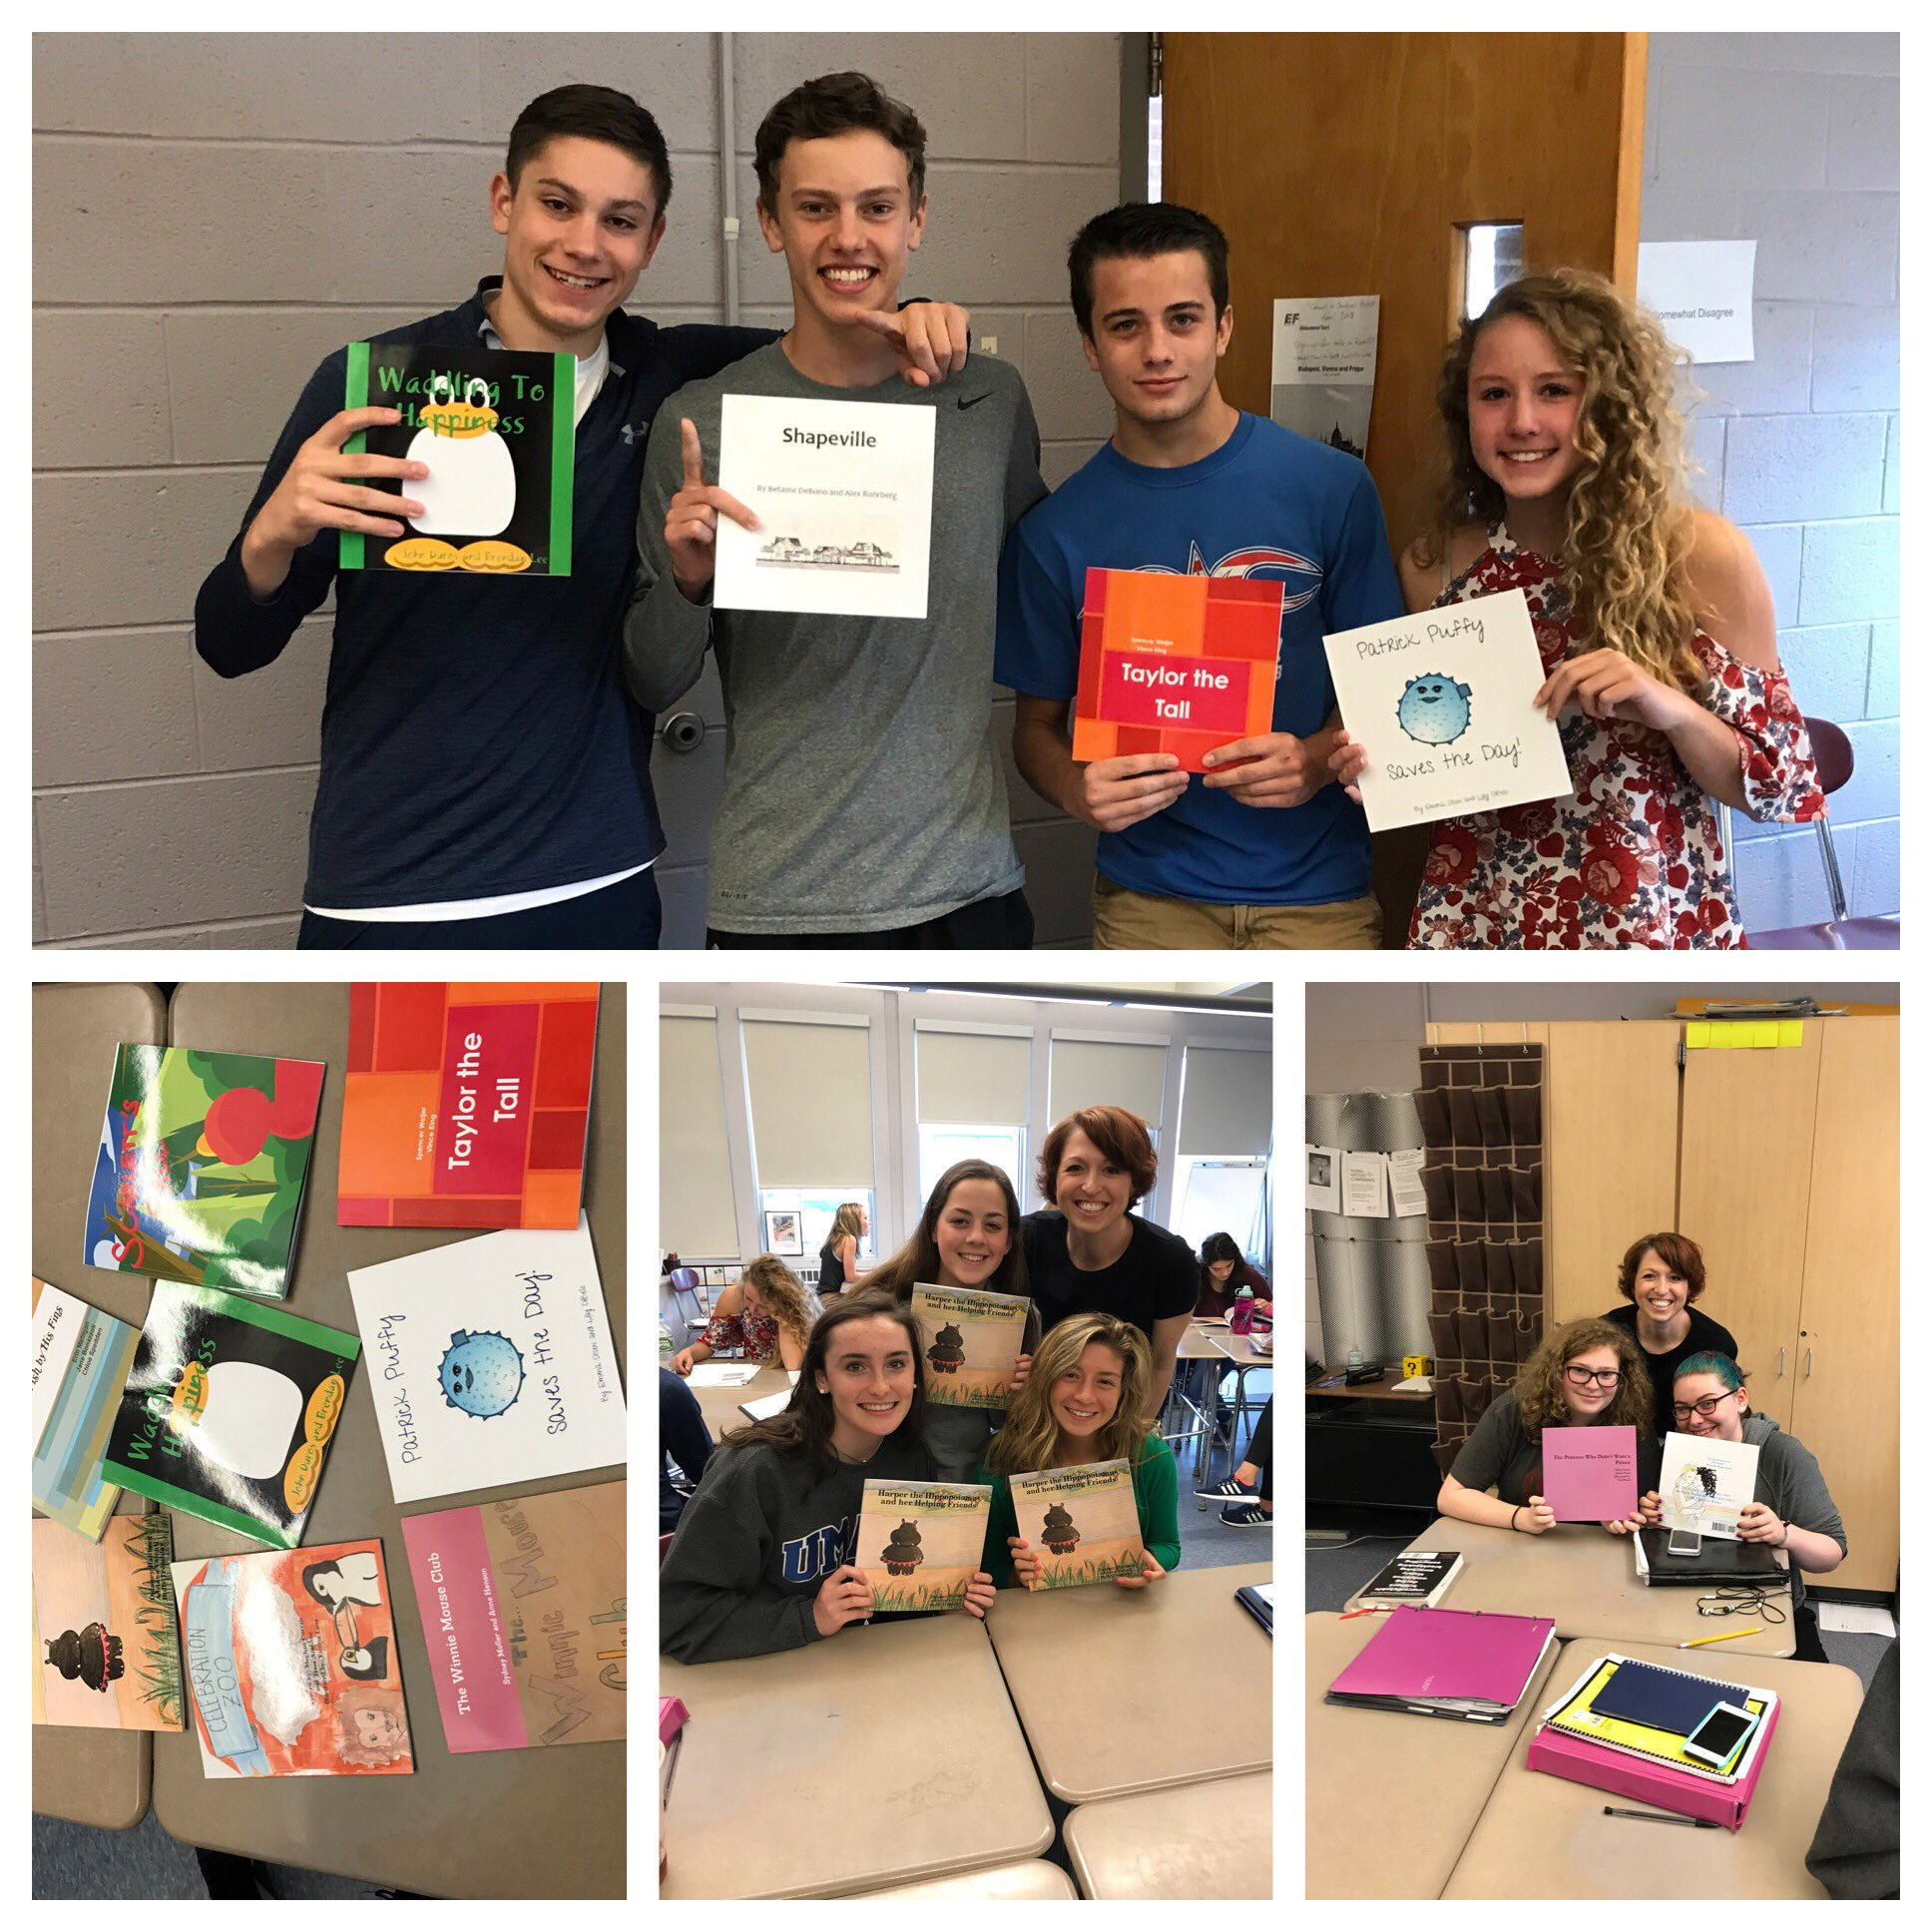 Period D sophomore English class showcase their published books @FoleyProcko today! https://t.co/JQInENMseT